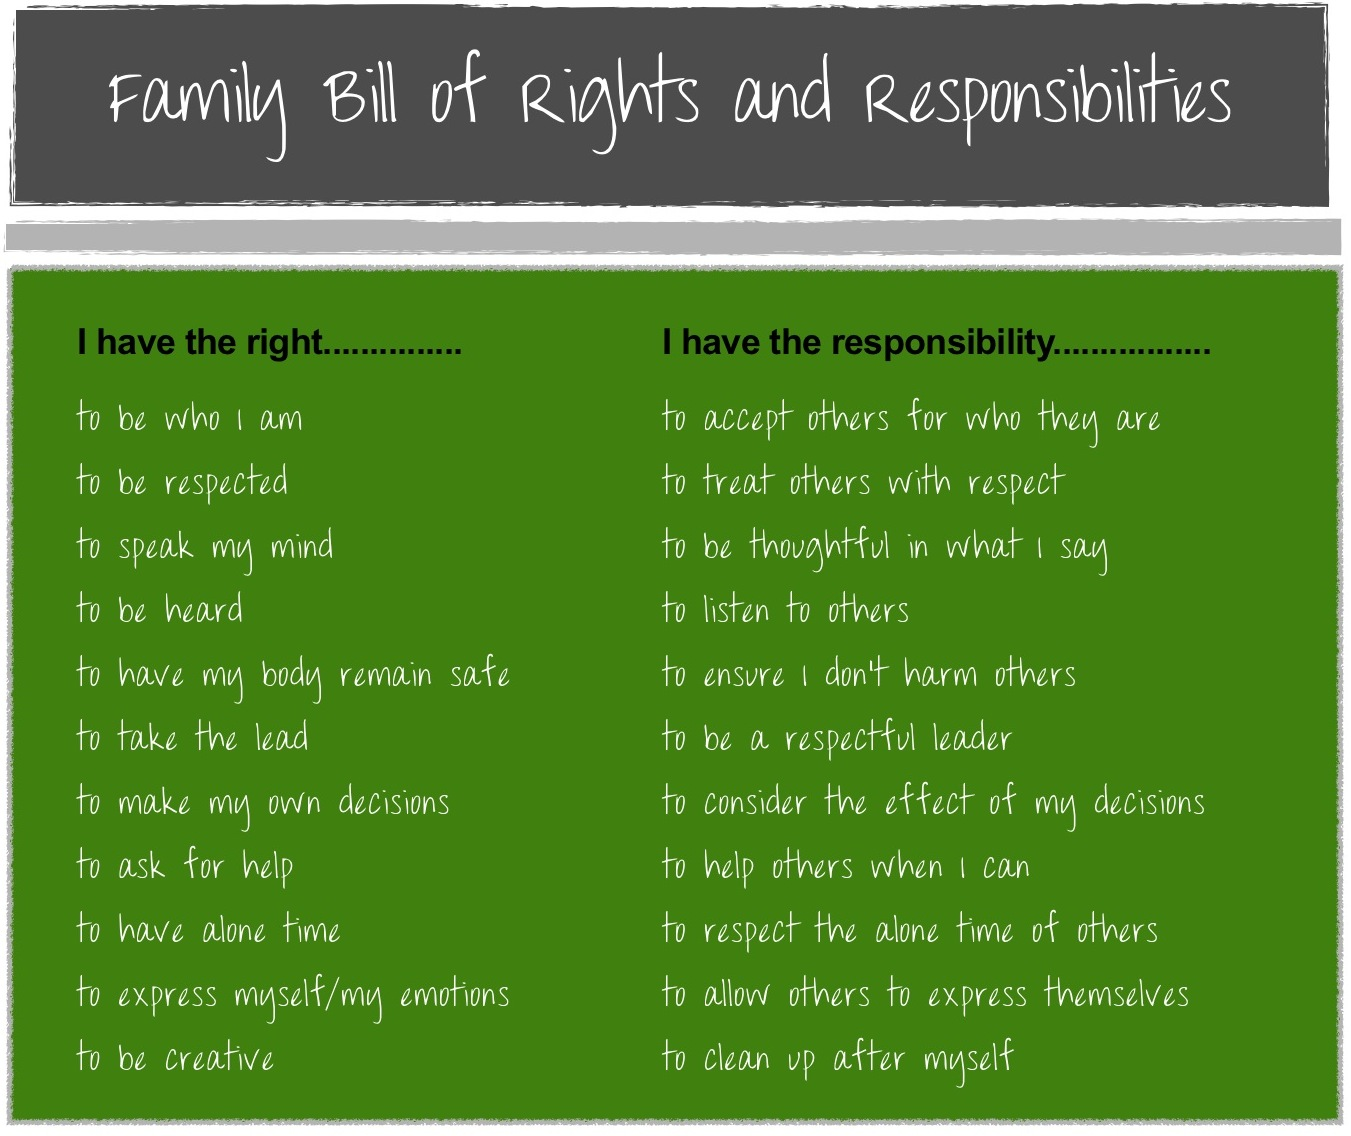 dating bill of rights and responsibilities Dating responsibilities as far as relationship responsibilities dating responsibilities go, there are some things i've identified as being dating bill of rights and.